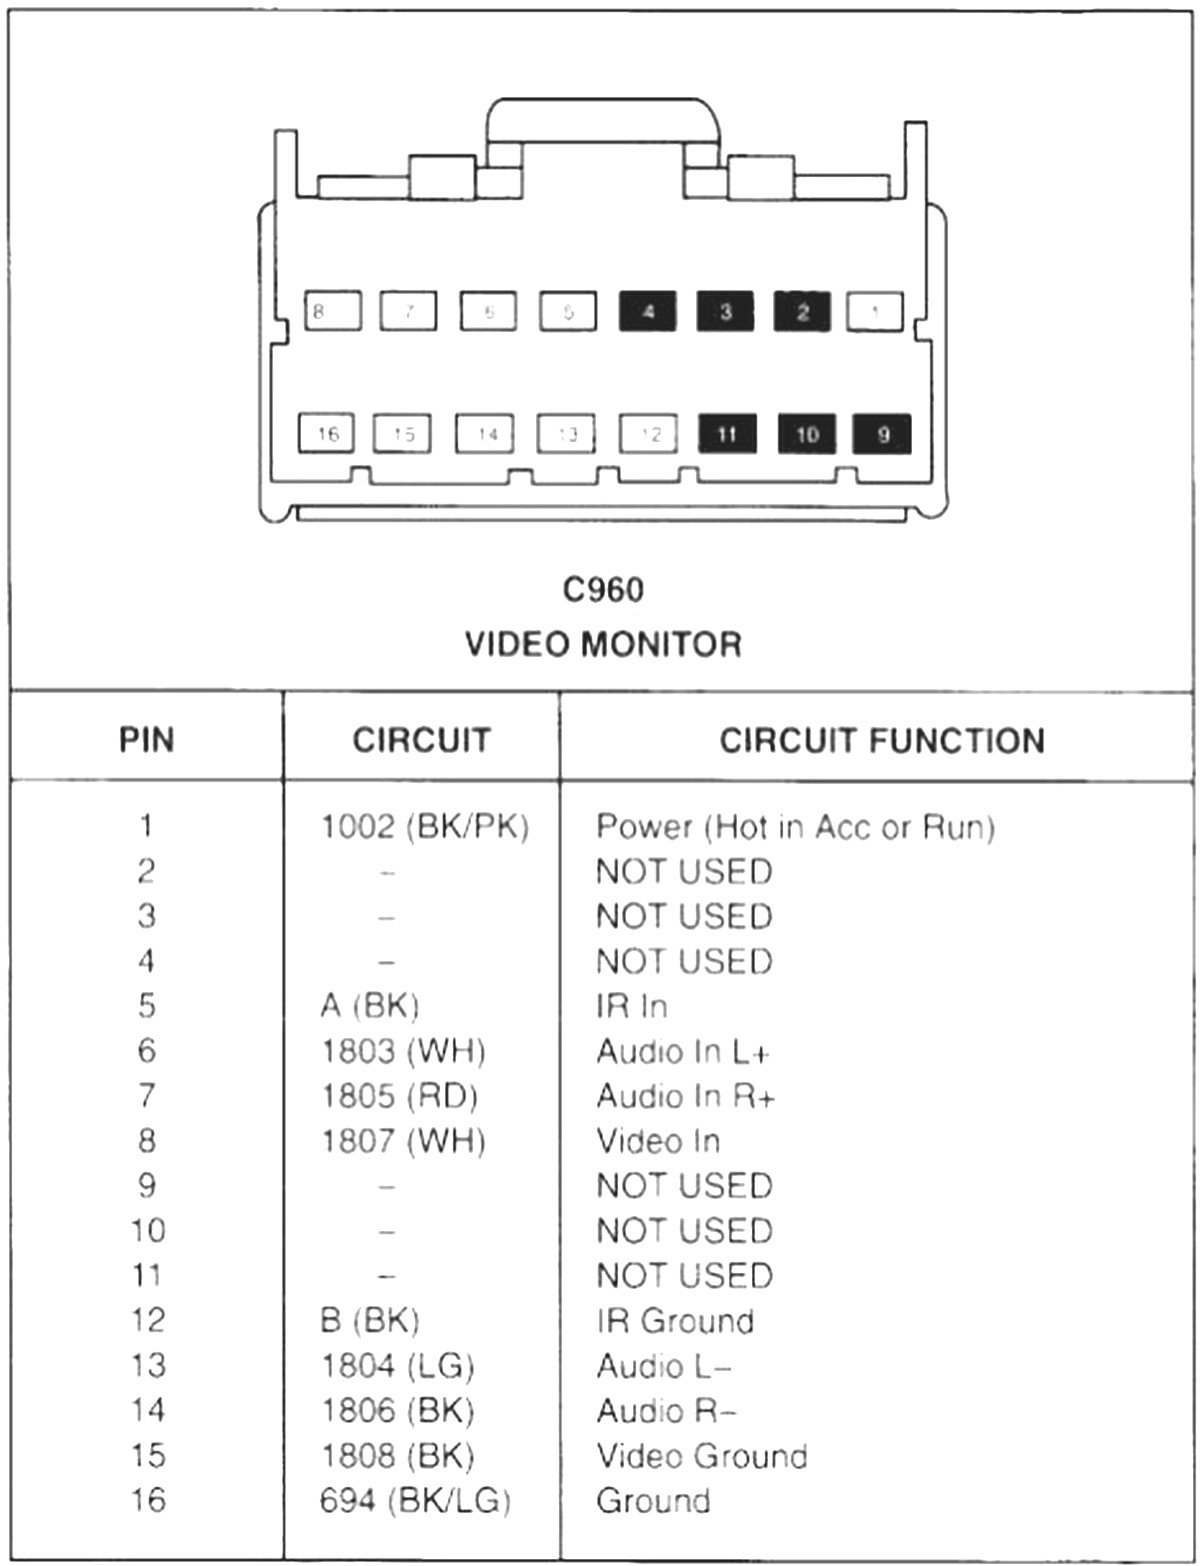 2001 ford mustang wiring diagram Download-Unique 2001 Ford Mustang Radio Wiring Diagram New Update In 2-d